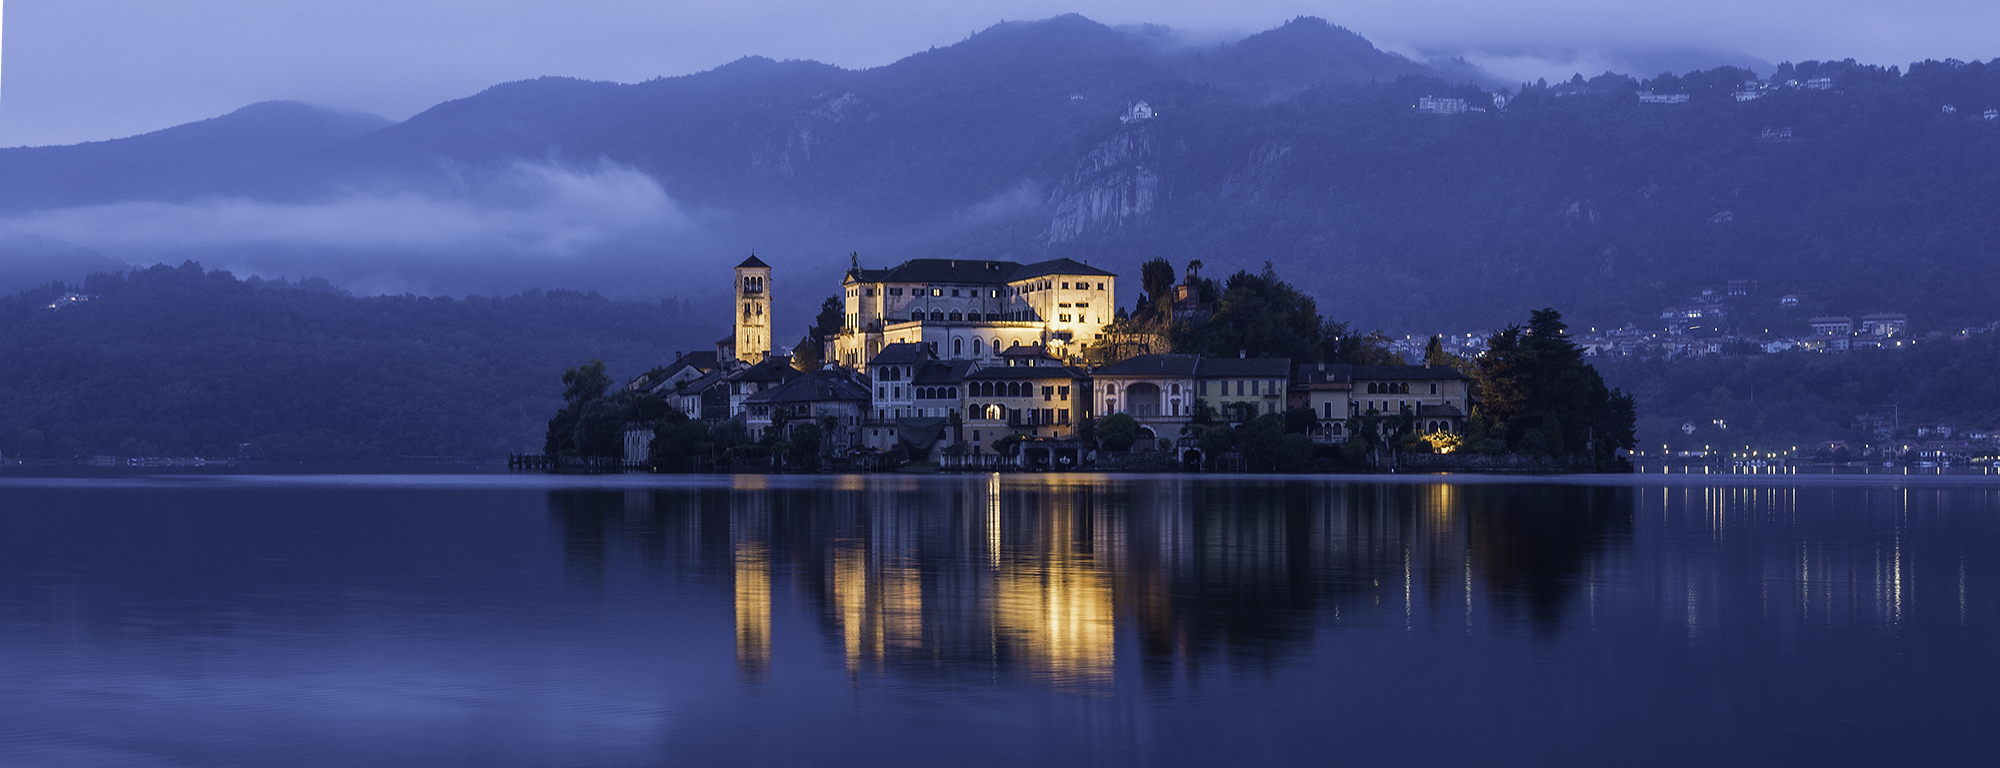 Lake Como To Lake Orta | July 2017 |  2 SPOTS OPEN